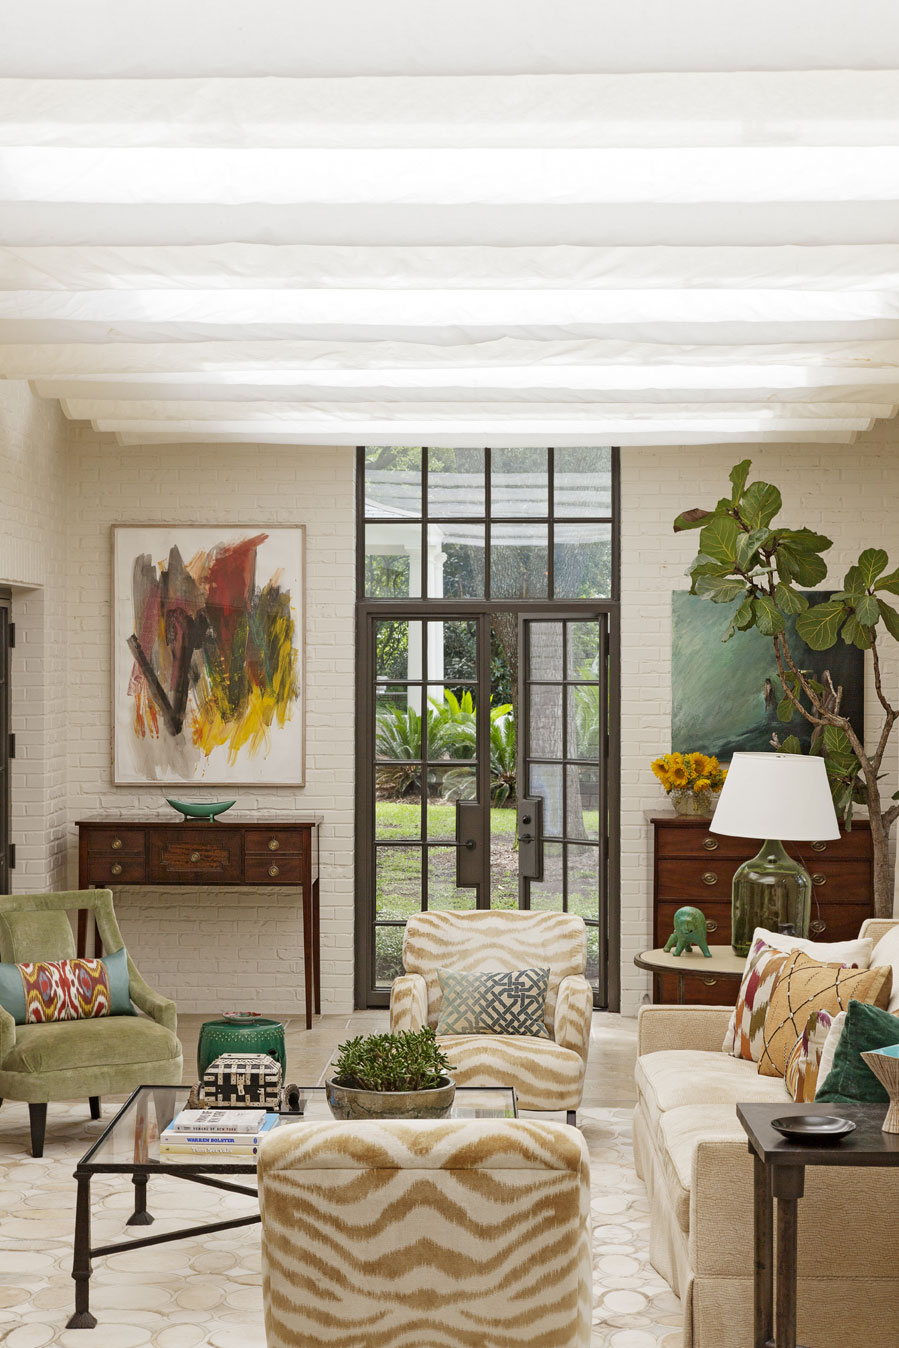 sun catcher: With its glass ceiling, brick walls, and concrete tile floors, the sun porch is architect Bobby McAlpine's update on the sunken dens found in many mid-century homes.